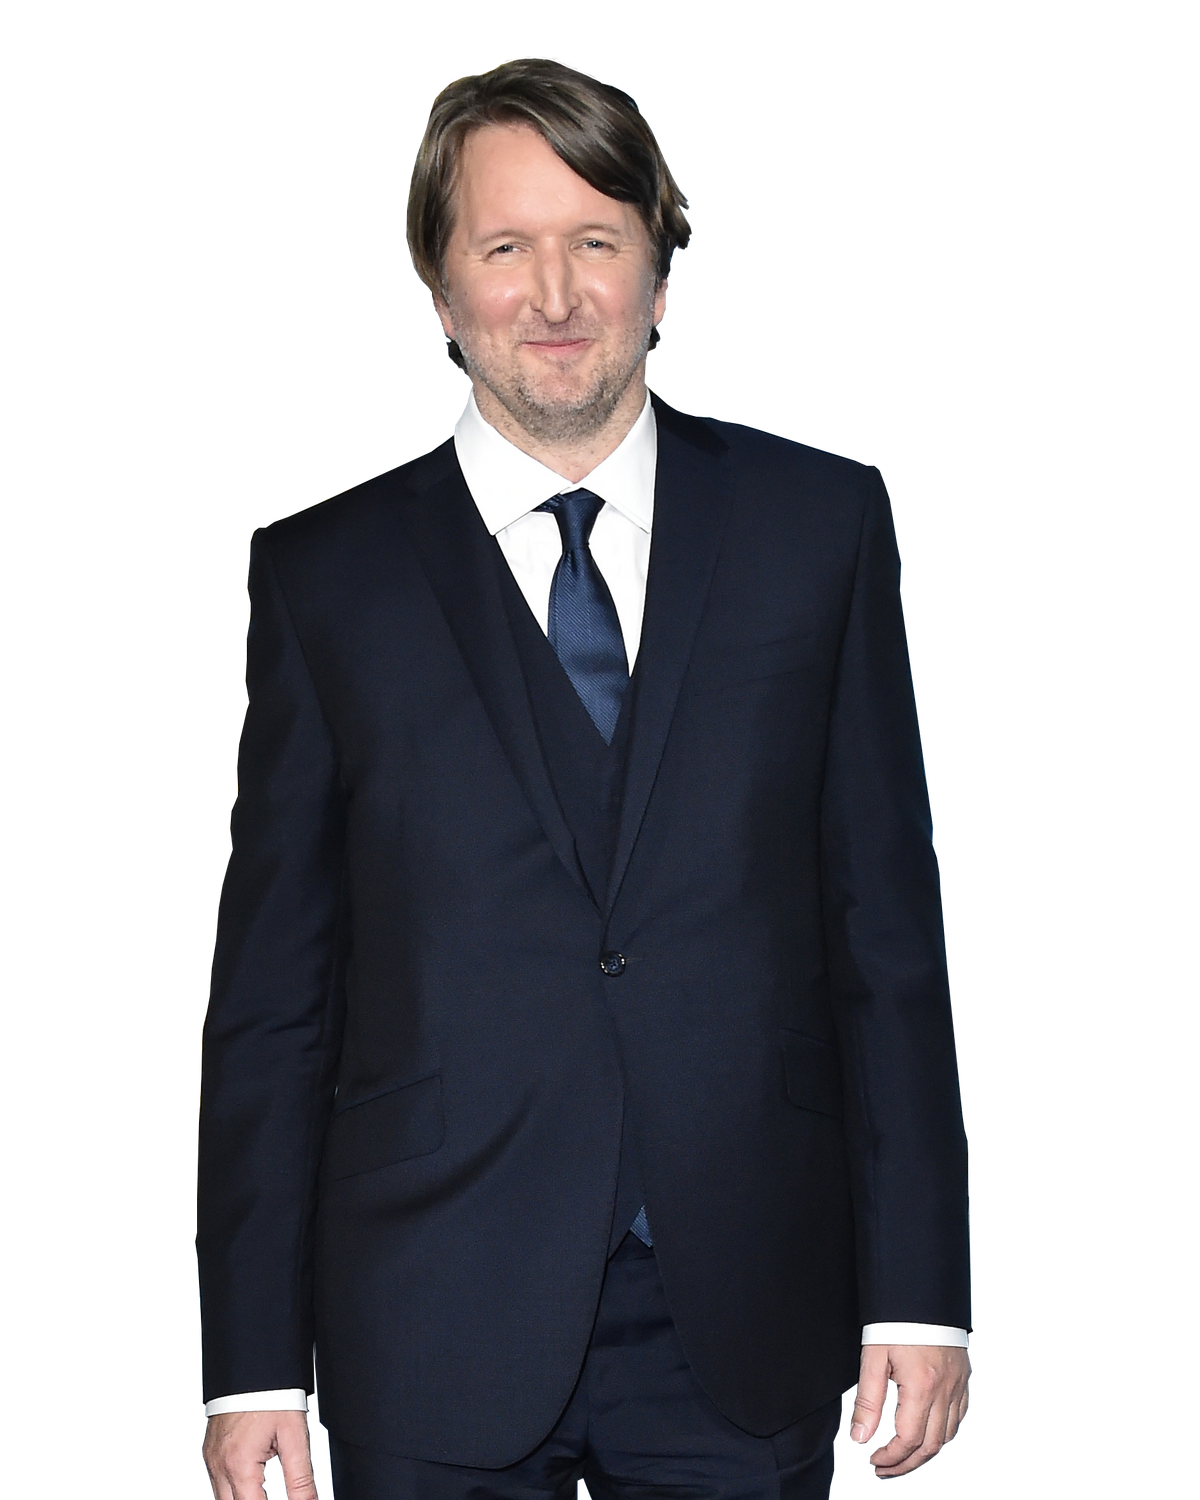 Cats Director Tom Hooper On The Feet In His Movie